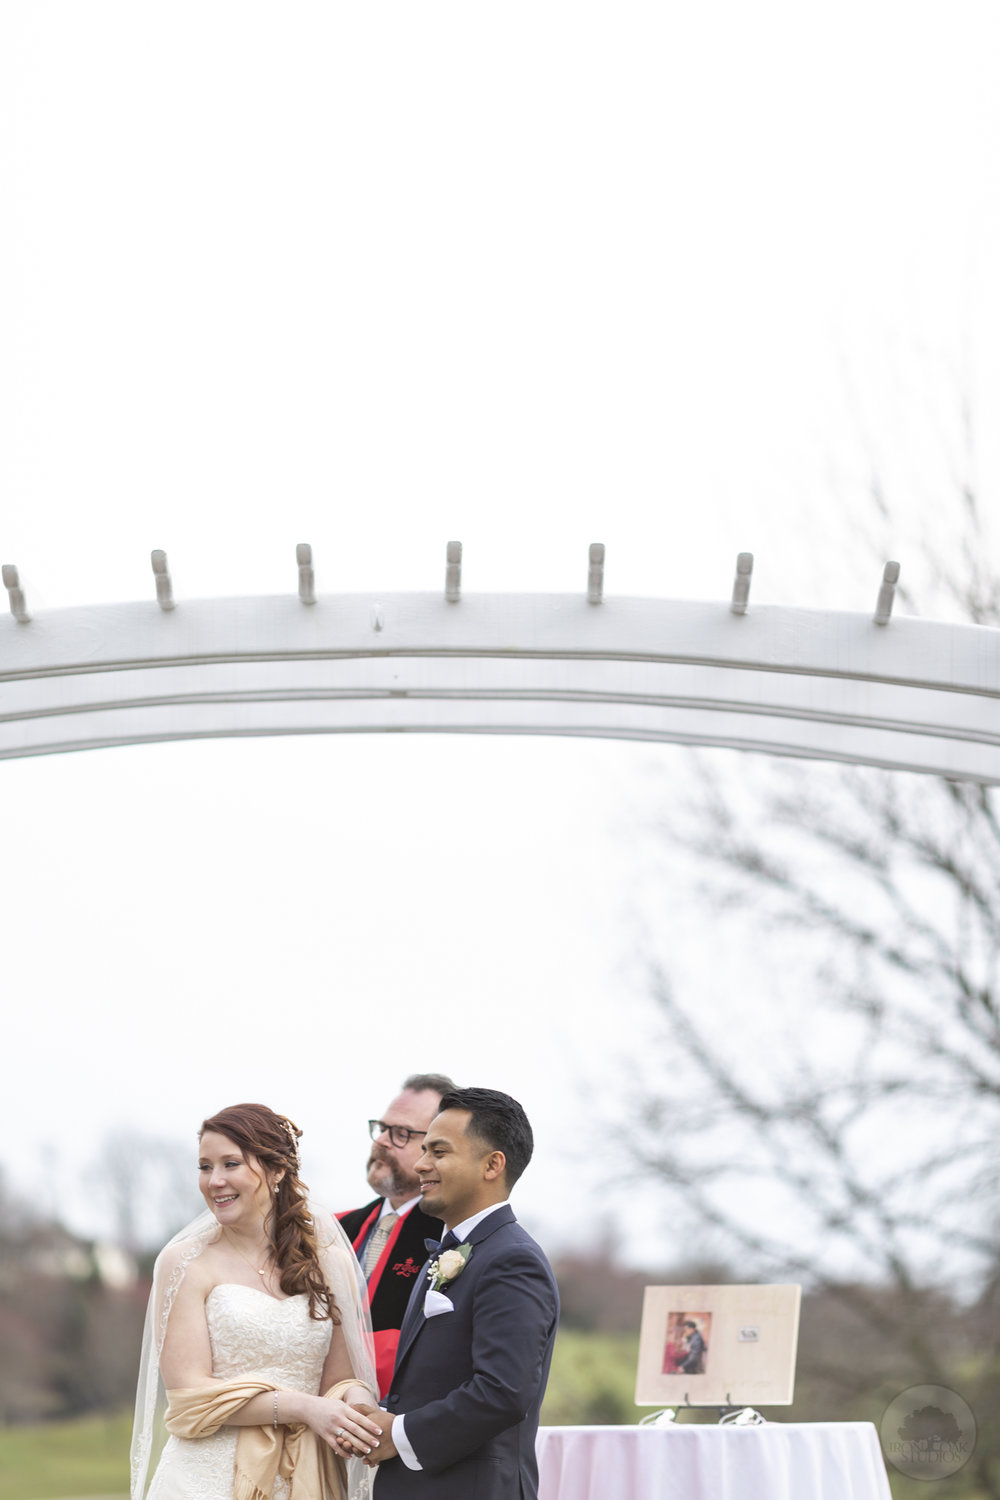 Iron-Oak-Studios-Contreras-Wedding-Blog-Heritage-Hills-Resort-York-62.jpg